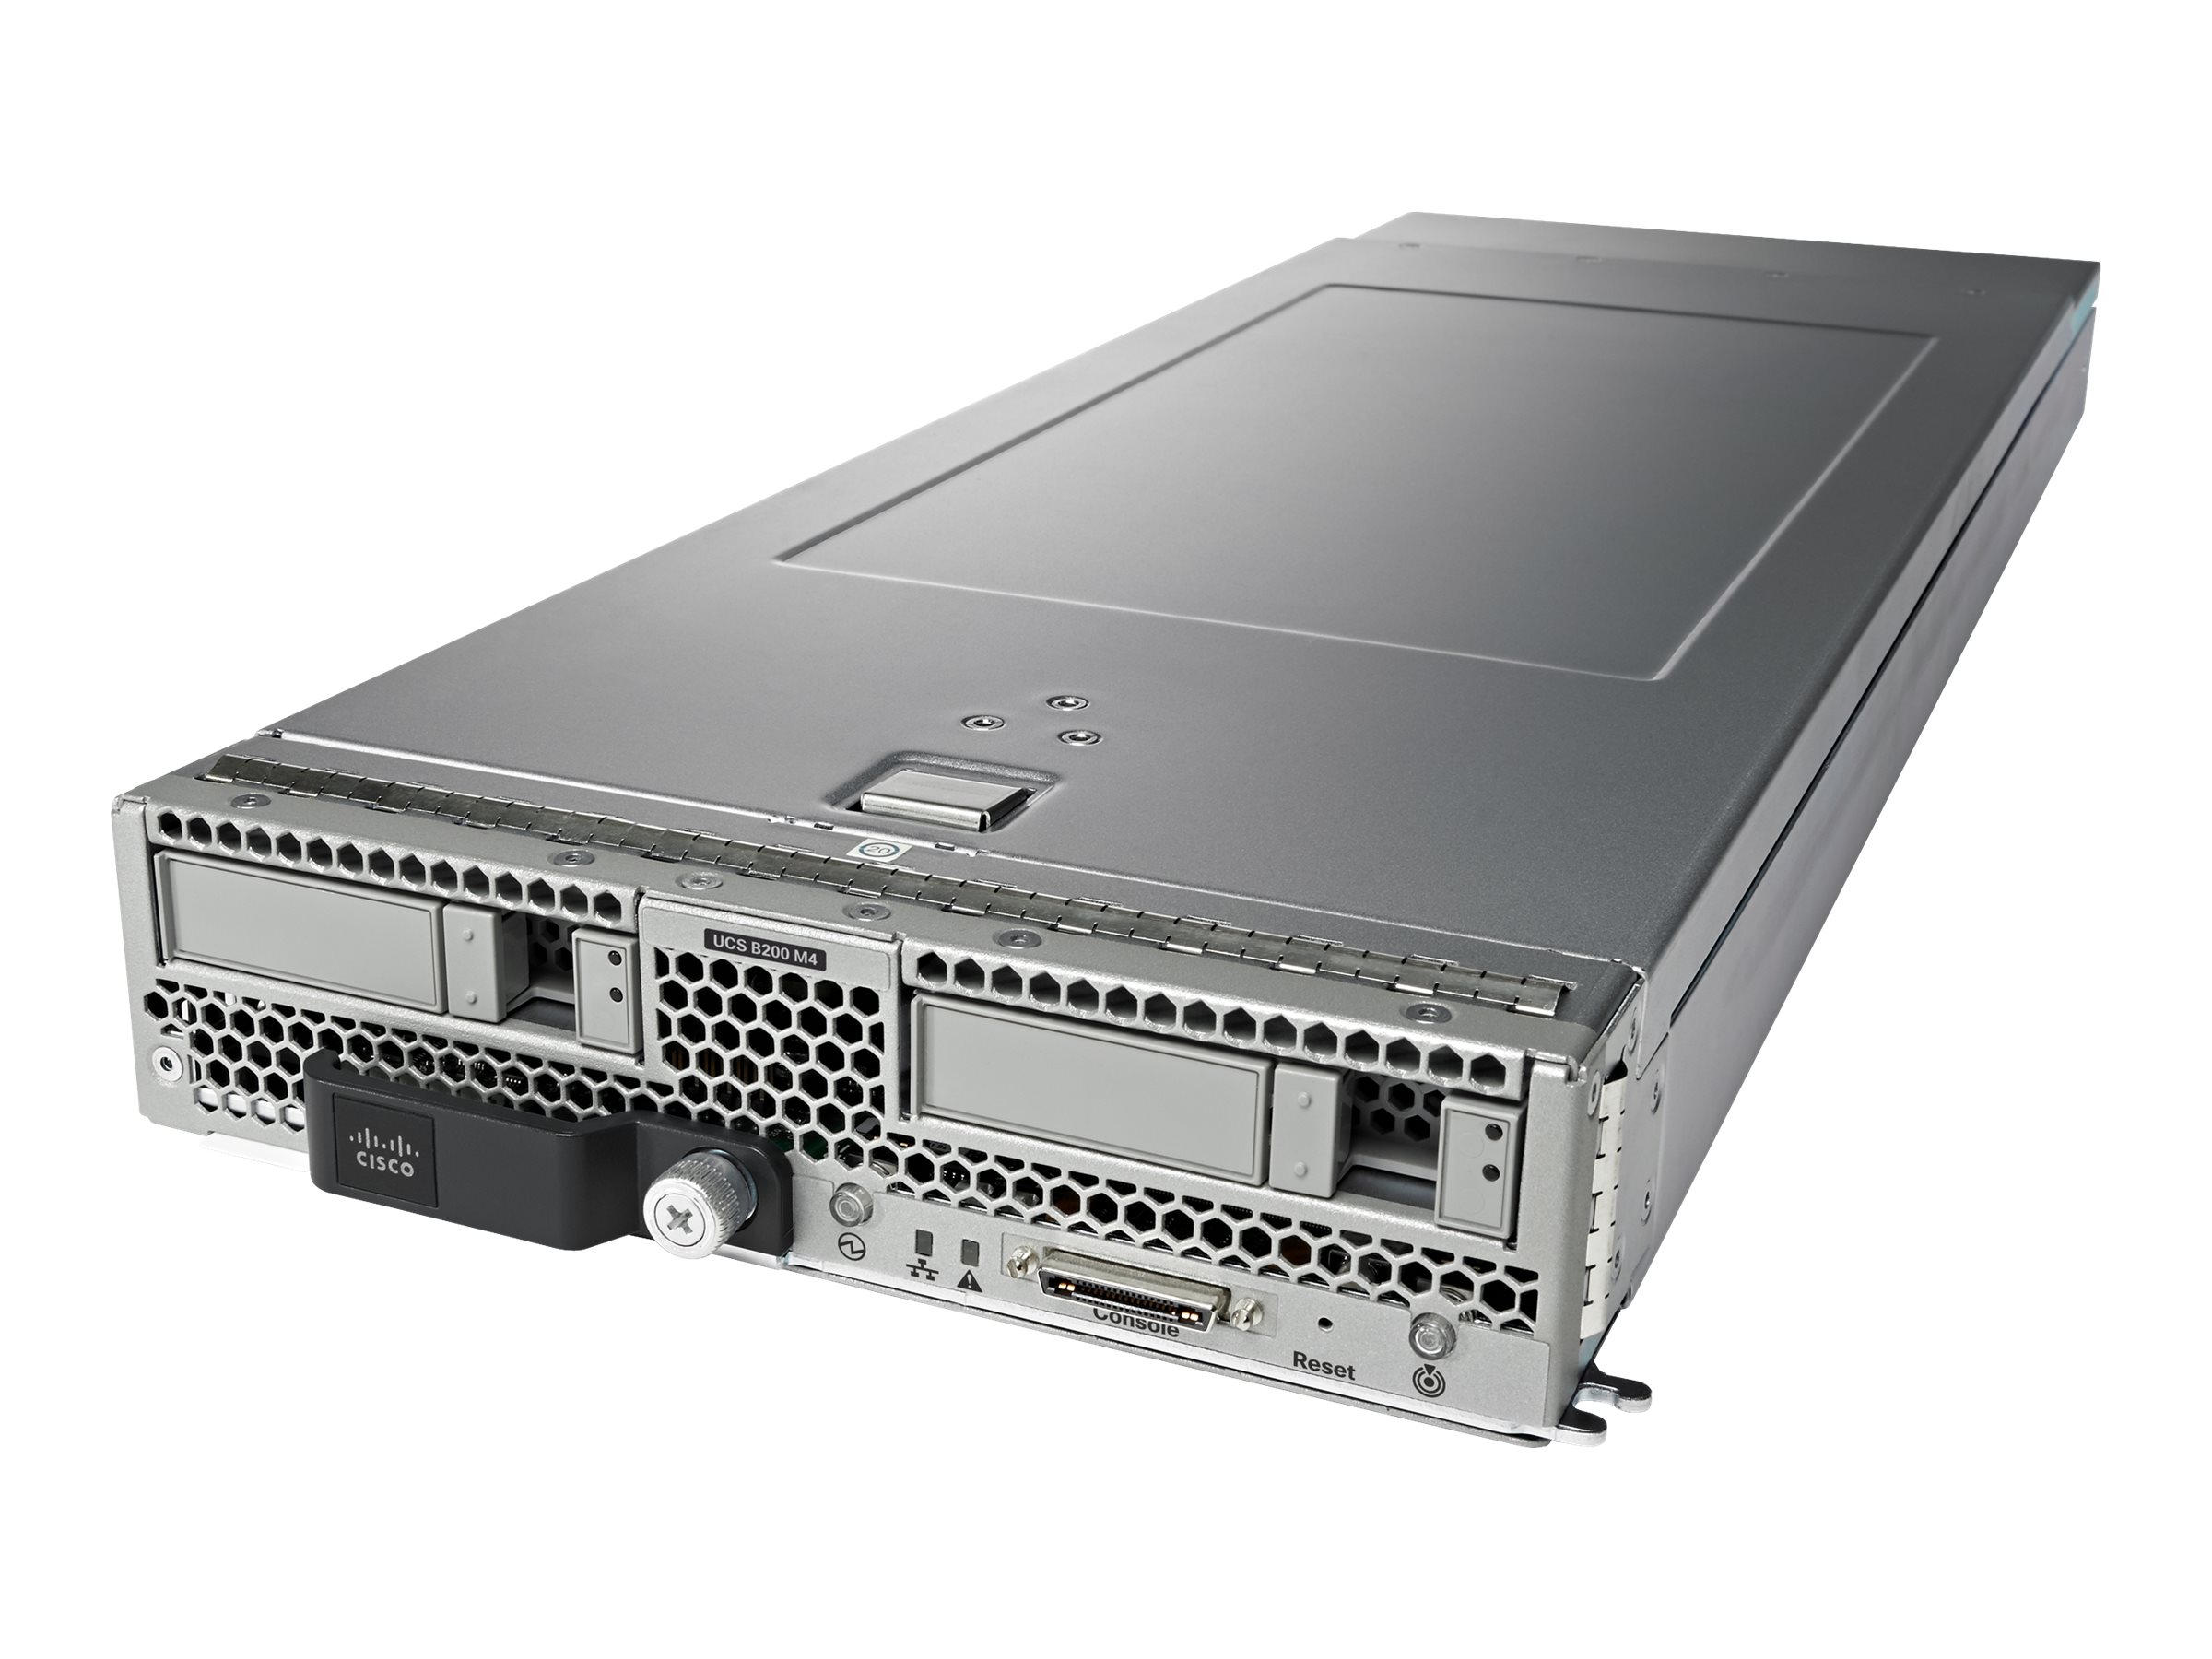 Cisco UCS Smart Play Select B200 M4 Blade Advanced 1 (2x)E5-2690 v3 256GB VIC1340